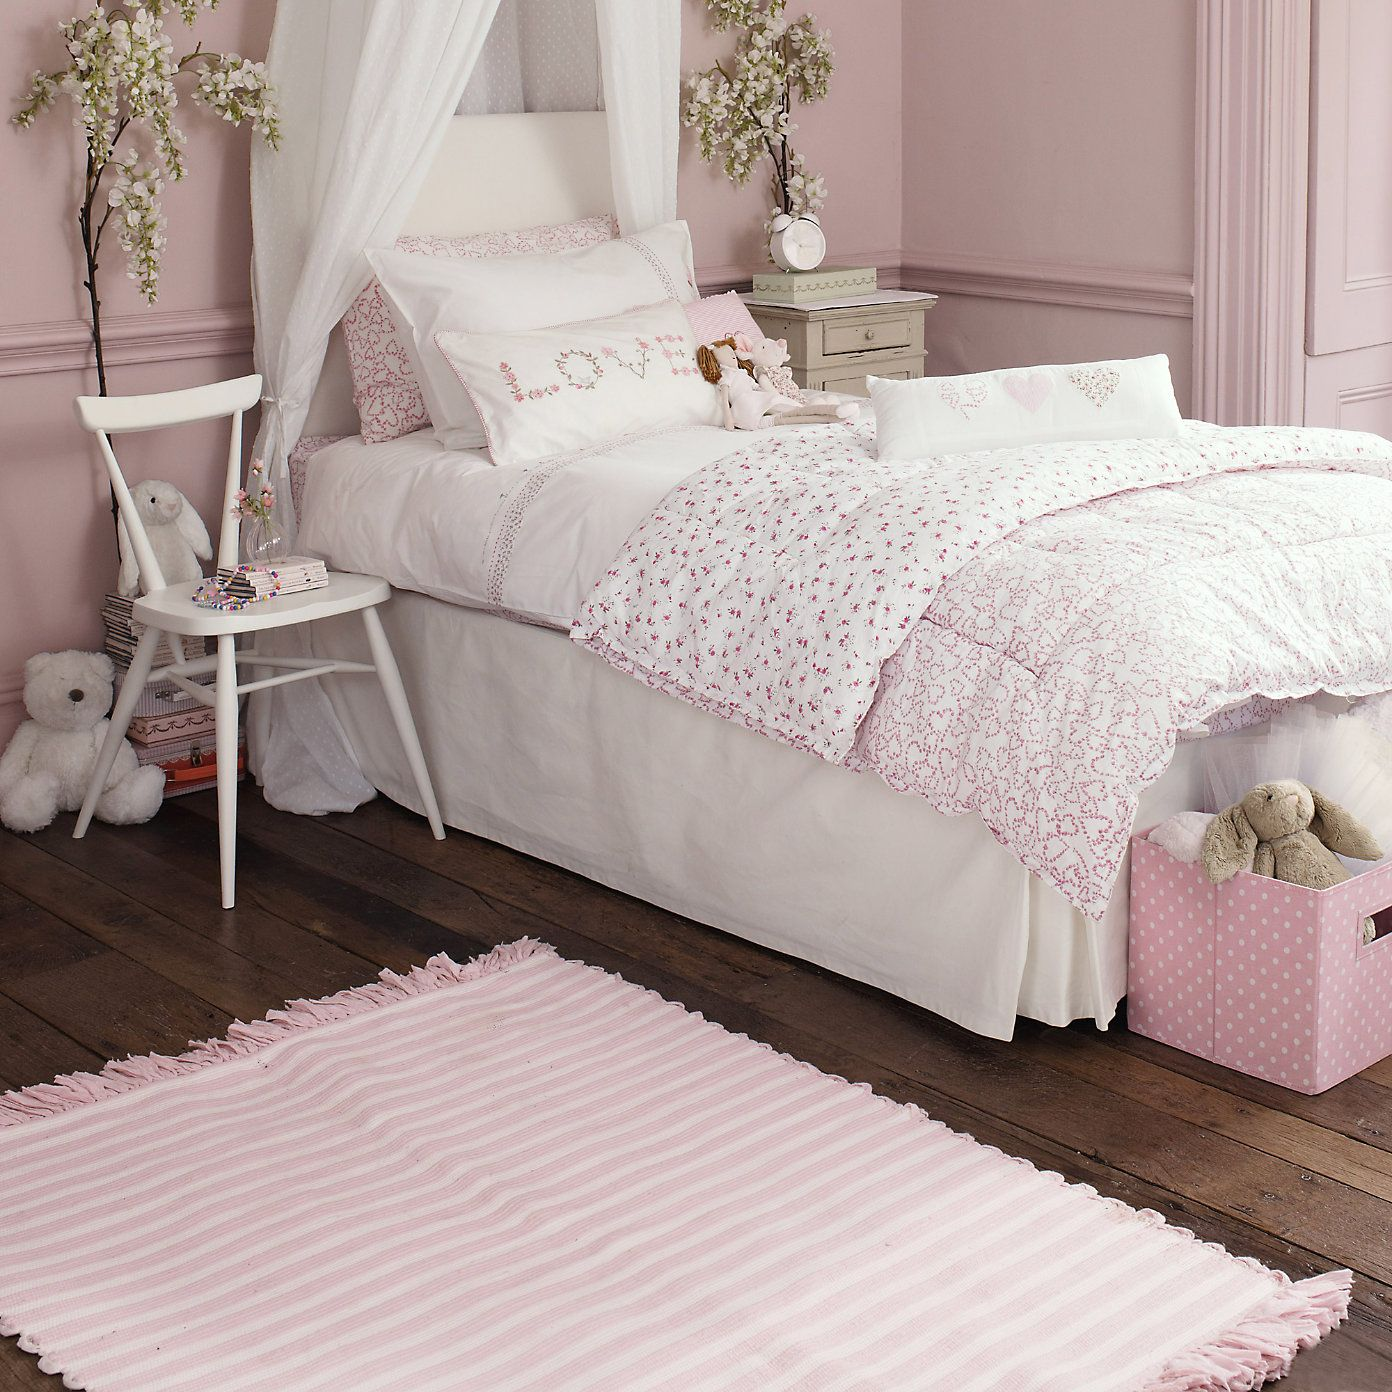 Shabby Chic Bedrooms Adults: Buy Childrens Bedroom > Childrens Bedroom Accessories